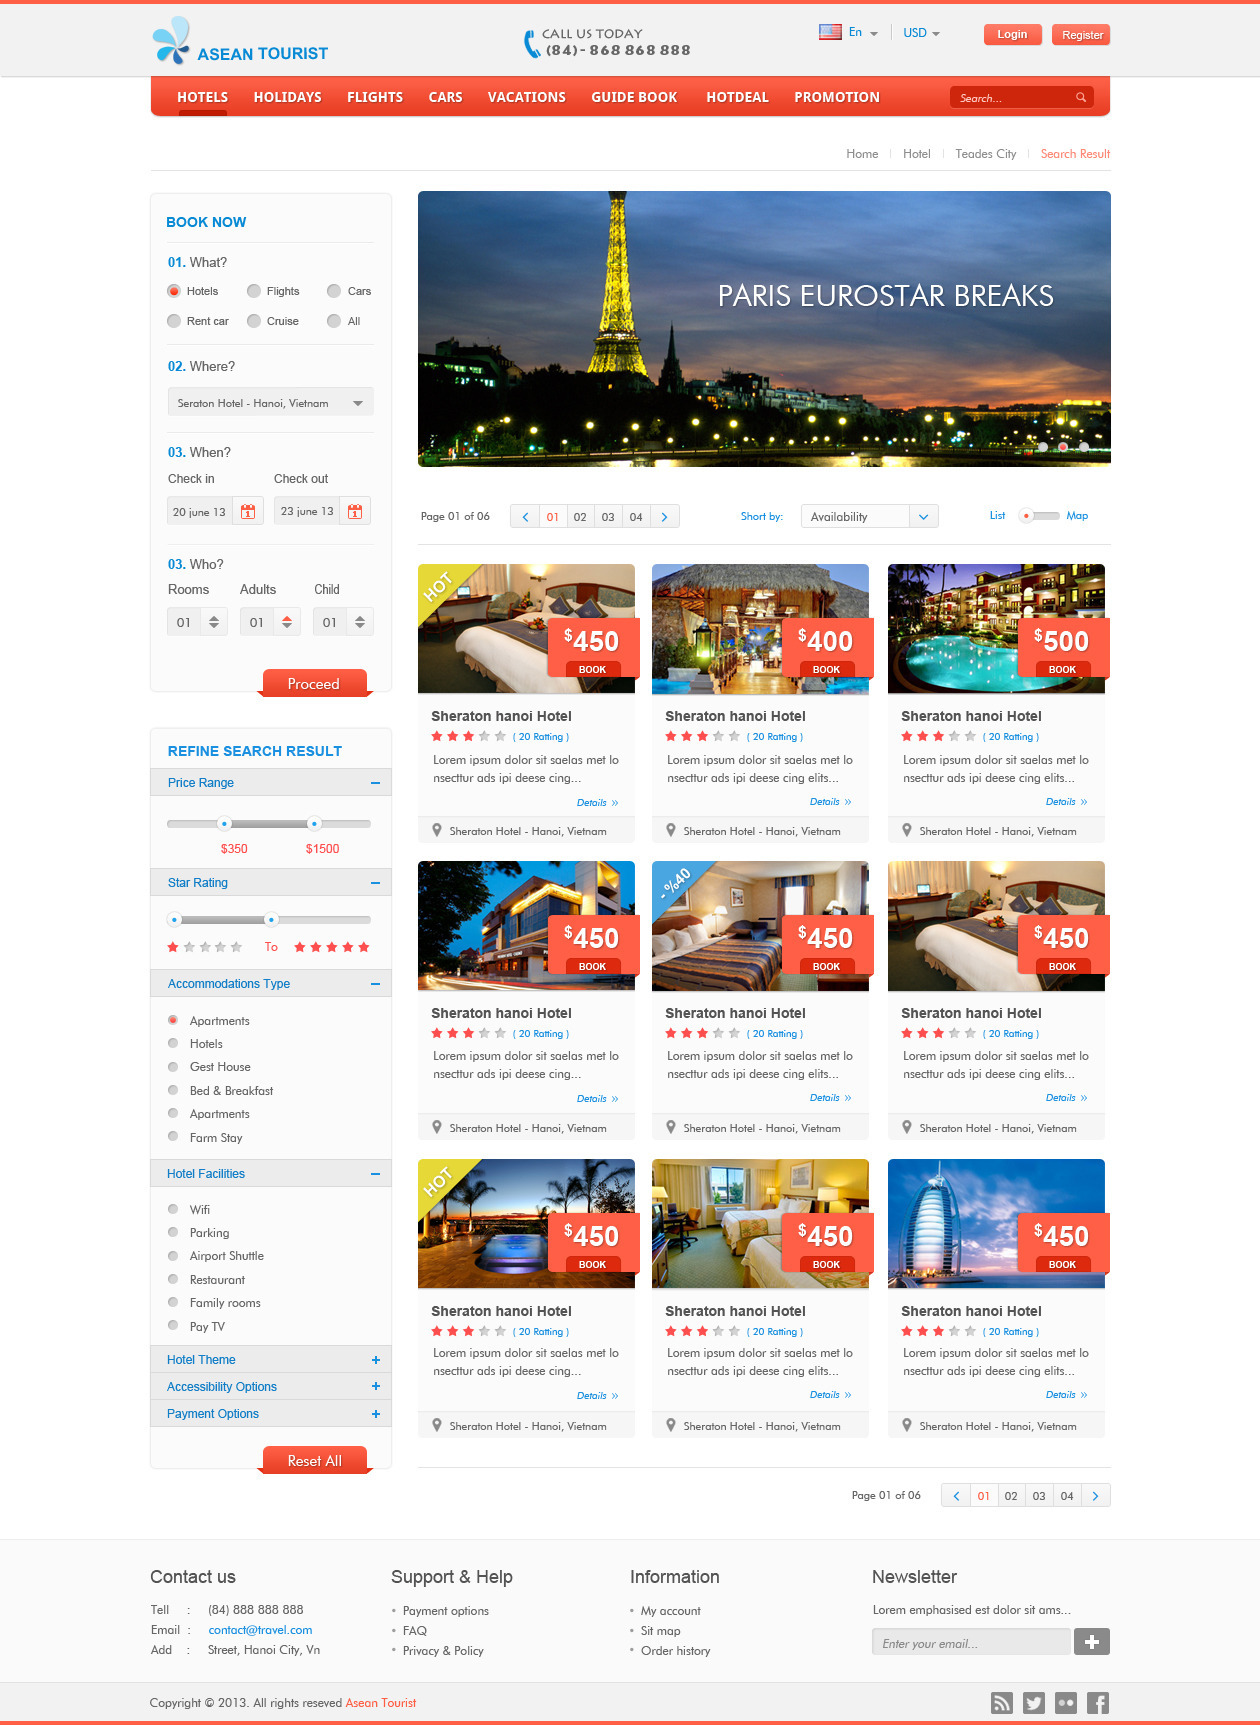 aTourist - Hotel, Travel Booking Site Template by Templatation ...